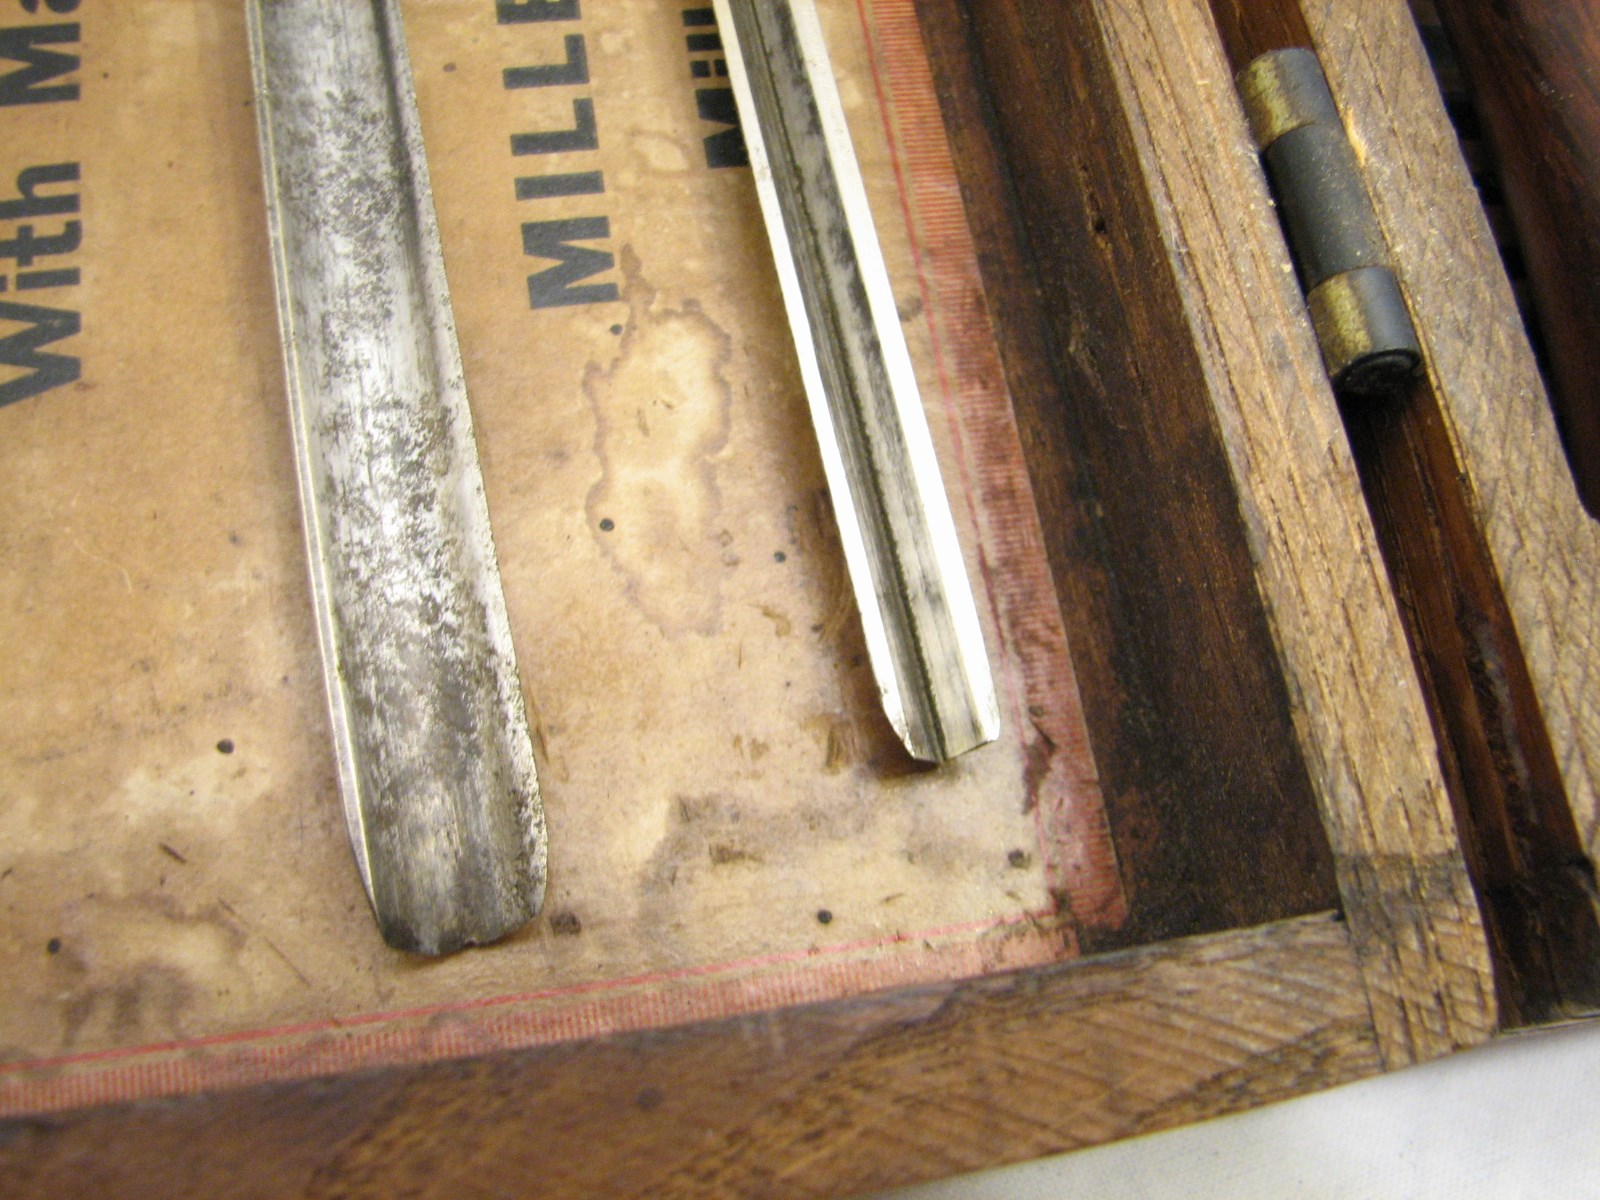 Rare set fine millers falls wood chip carving chisels